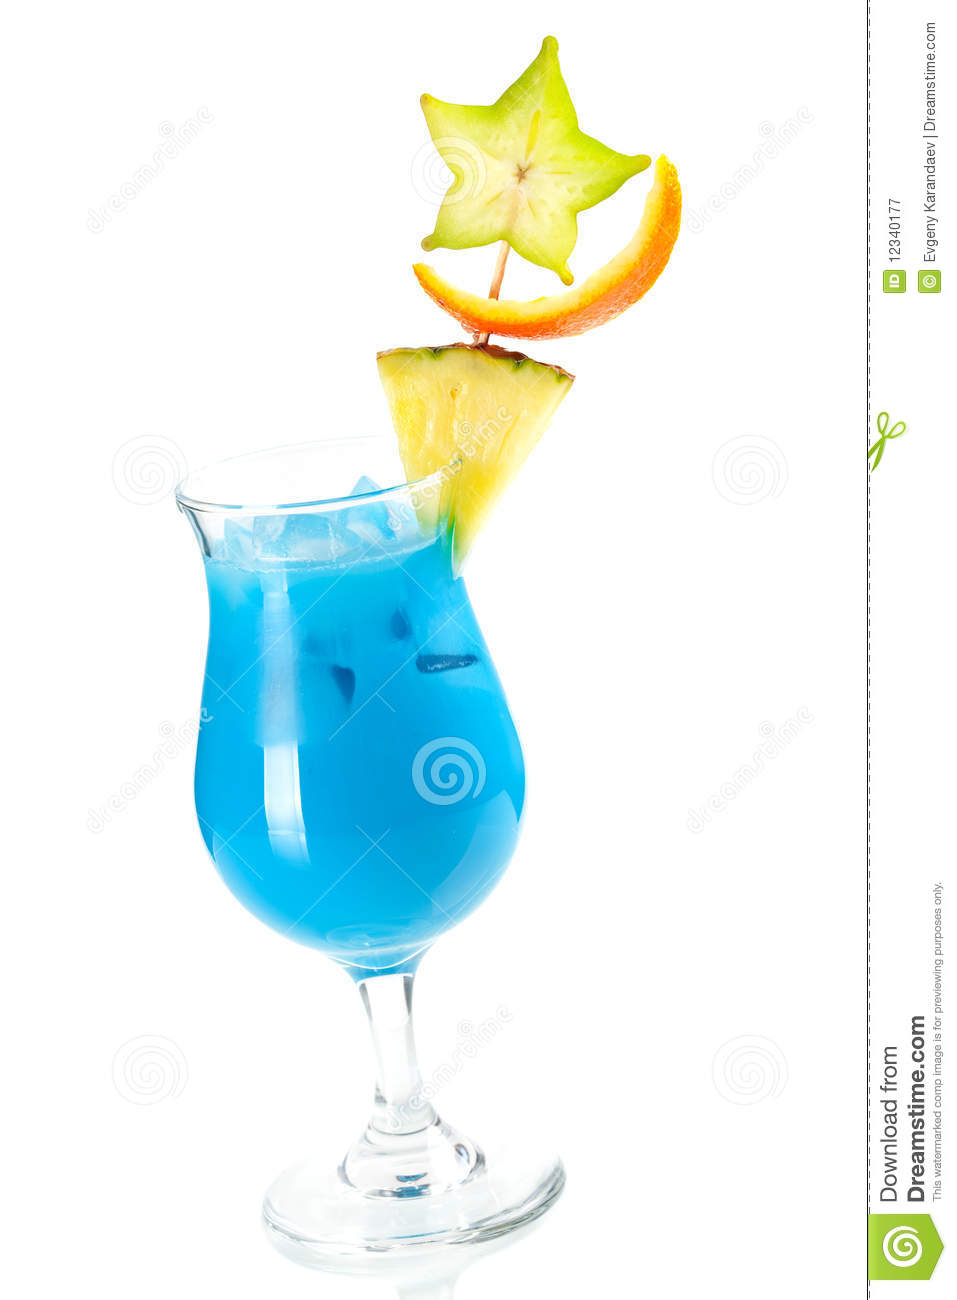 Blue hawaii tropical cocktail royalty free stock photography image 12340177 for Swimming pools drank instrumental